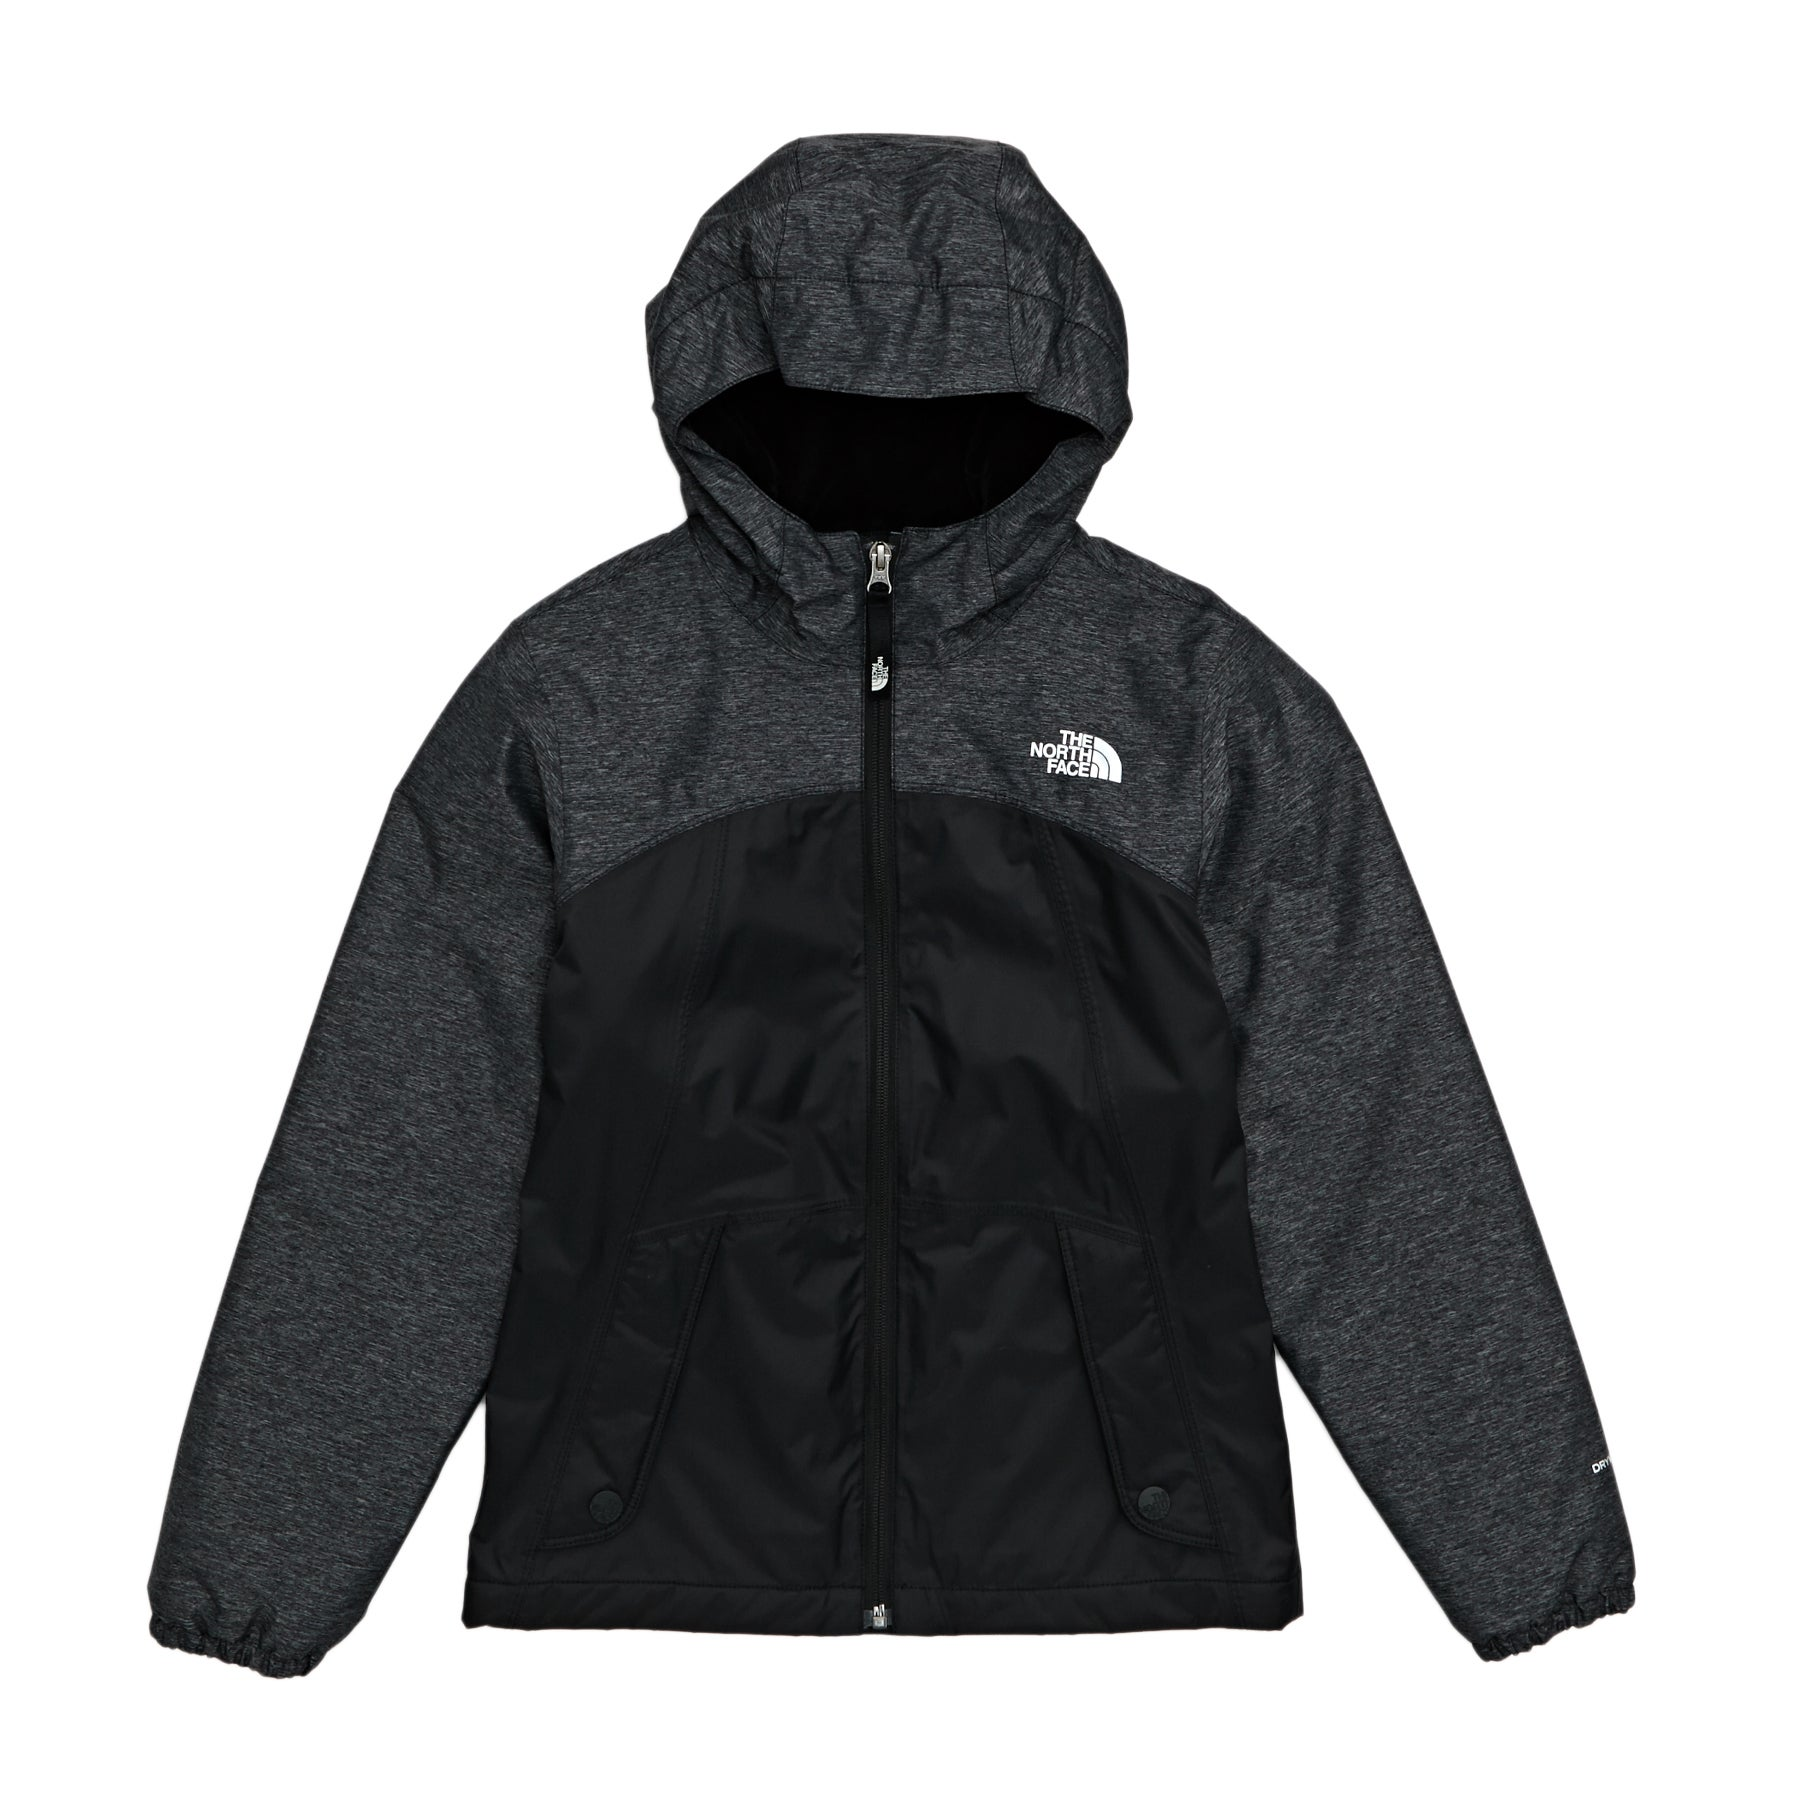 North Face Warm Storm Girls Jacket - Tnf Black